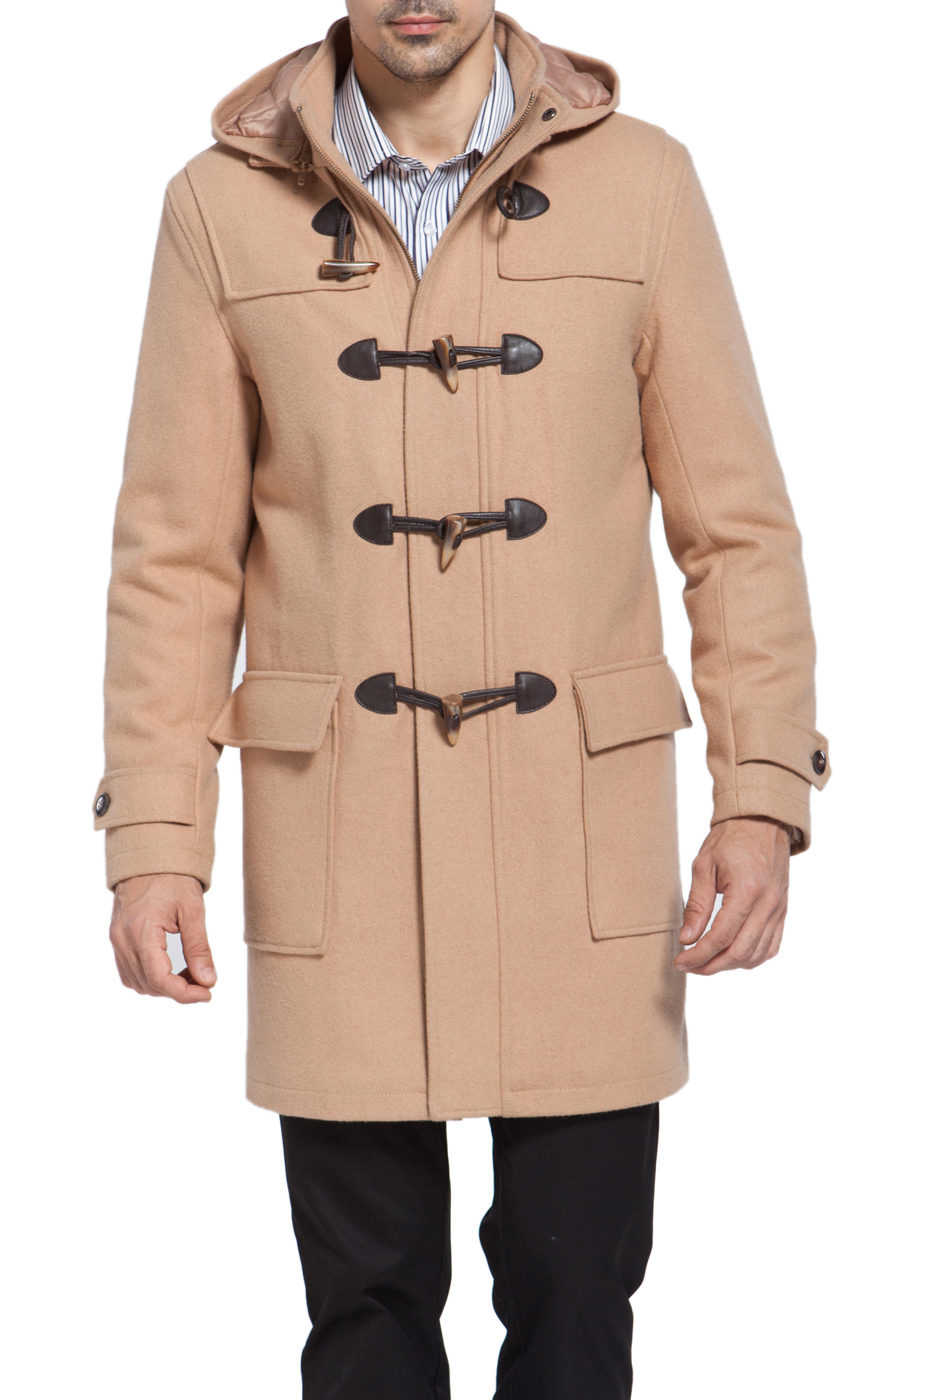 BGSD Men's 'Benjamin' Wool Blend Classic Duffle Coat by